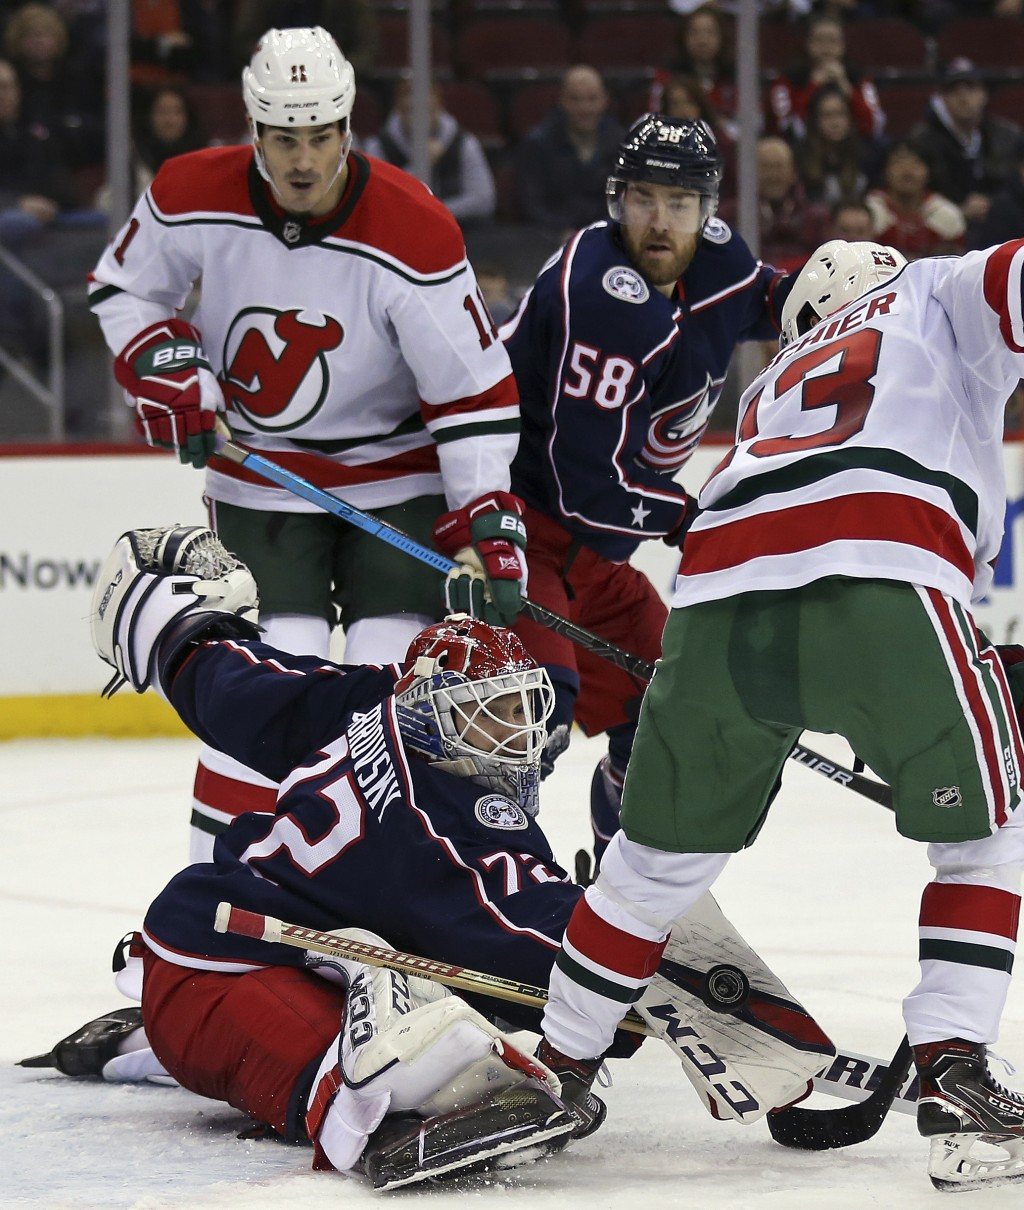 Columbus Blue Jackets goaltender Sergei Bobrovsky (72) makes a pad save on a shot by New Jersey Devils center Nico Hischier (13) during the second per...